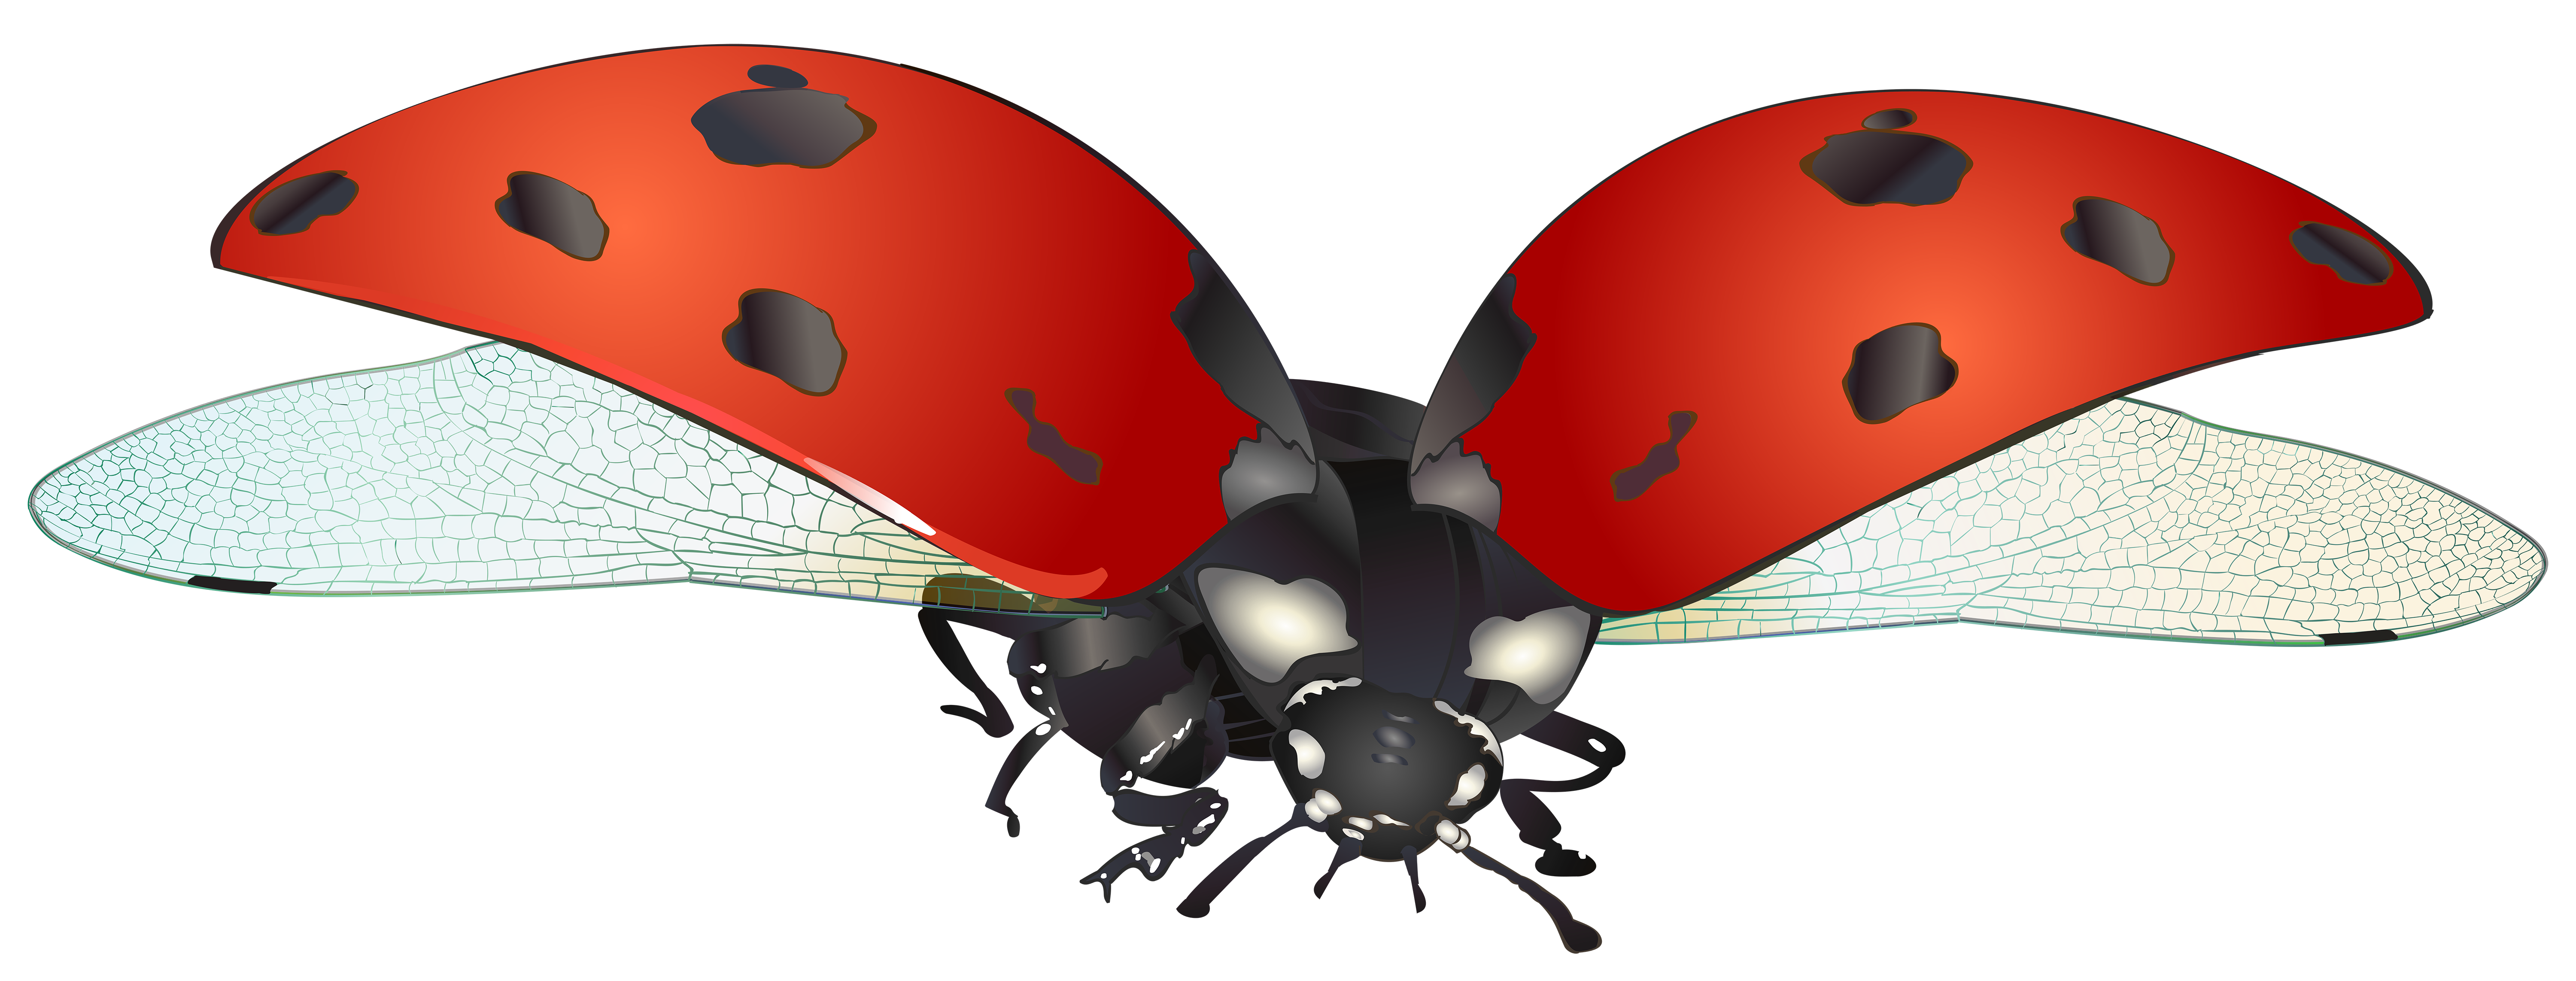 Ladybugs clipart birthday. Flying ladybug png clip